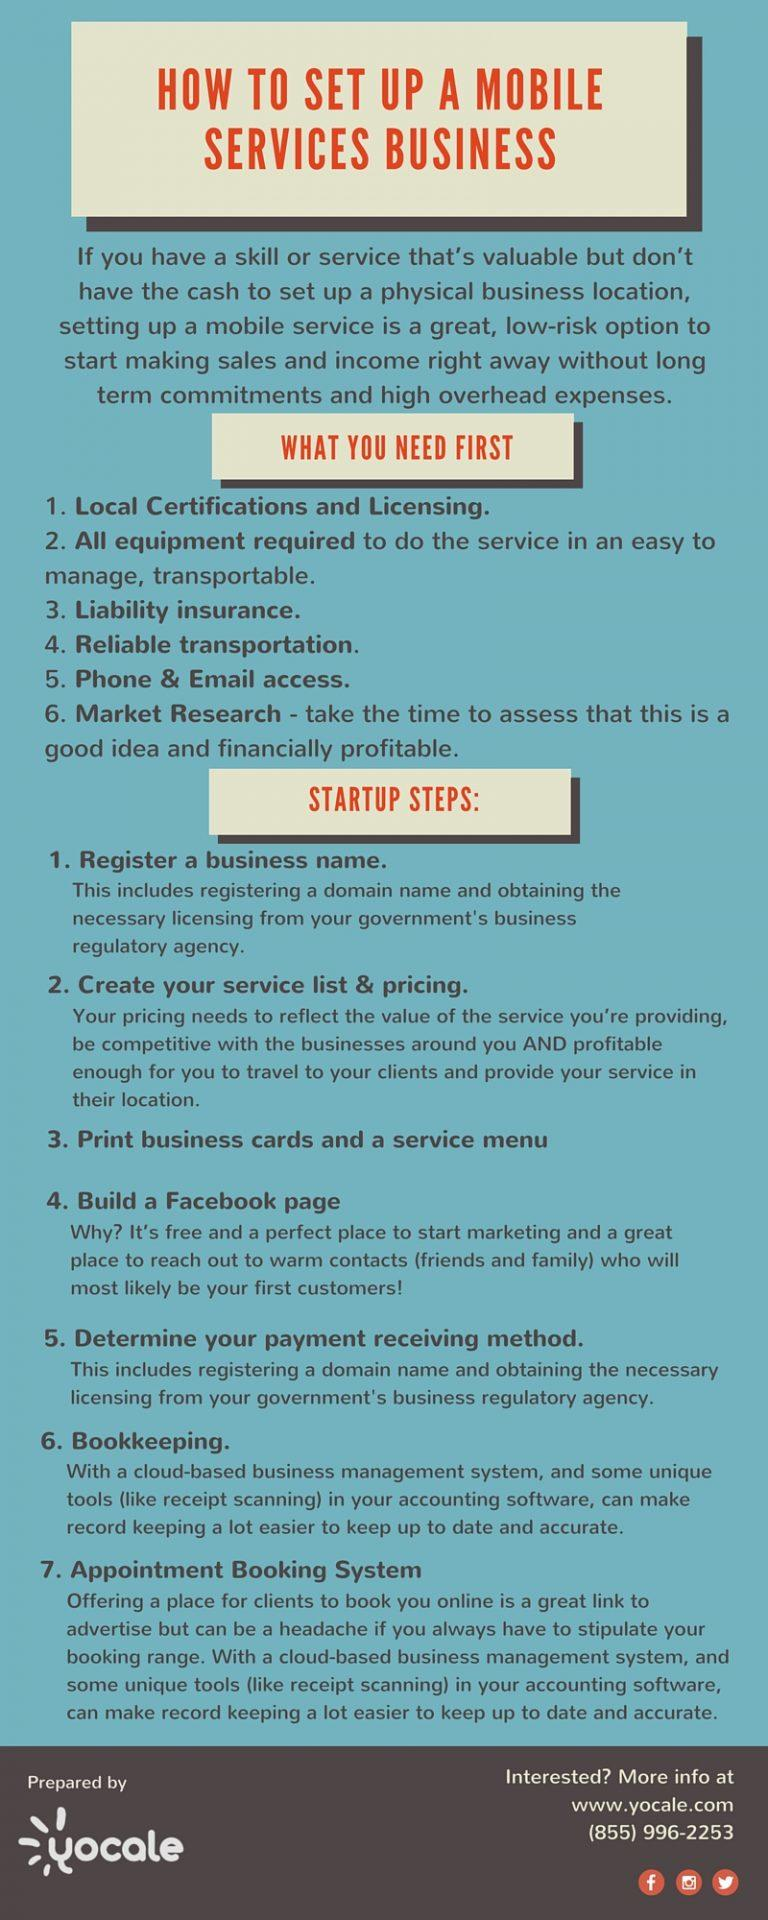 How To Set Up A Mobile Services Business